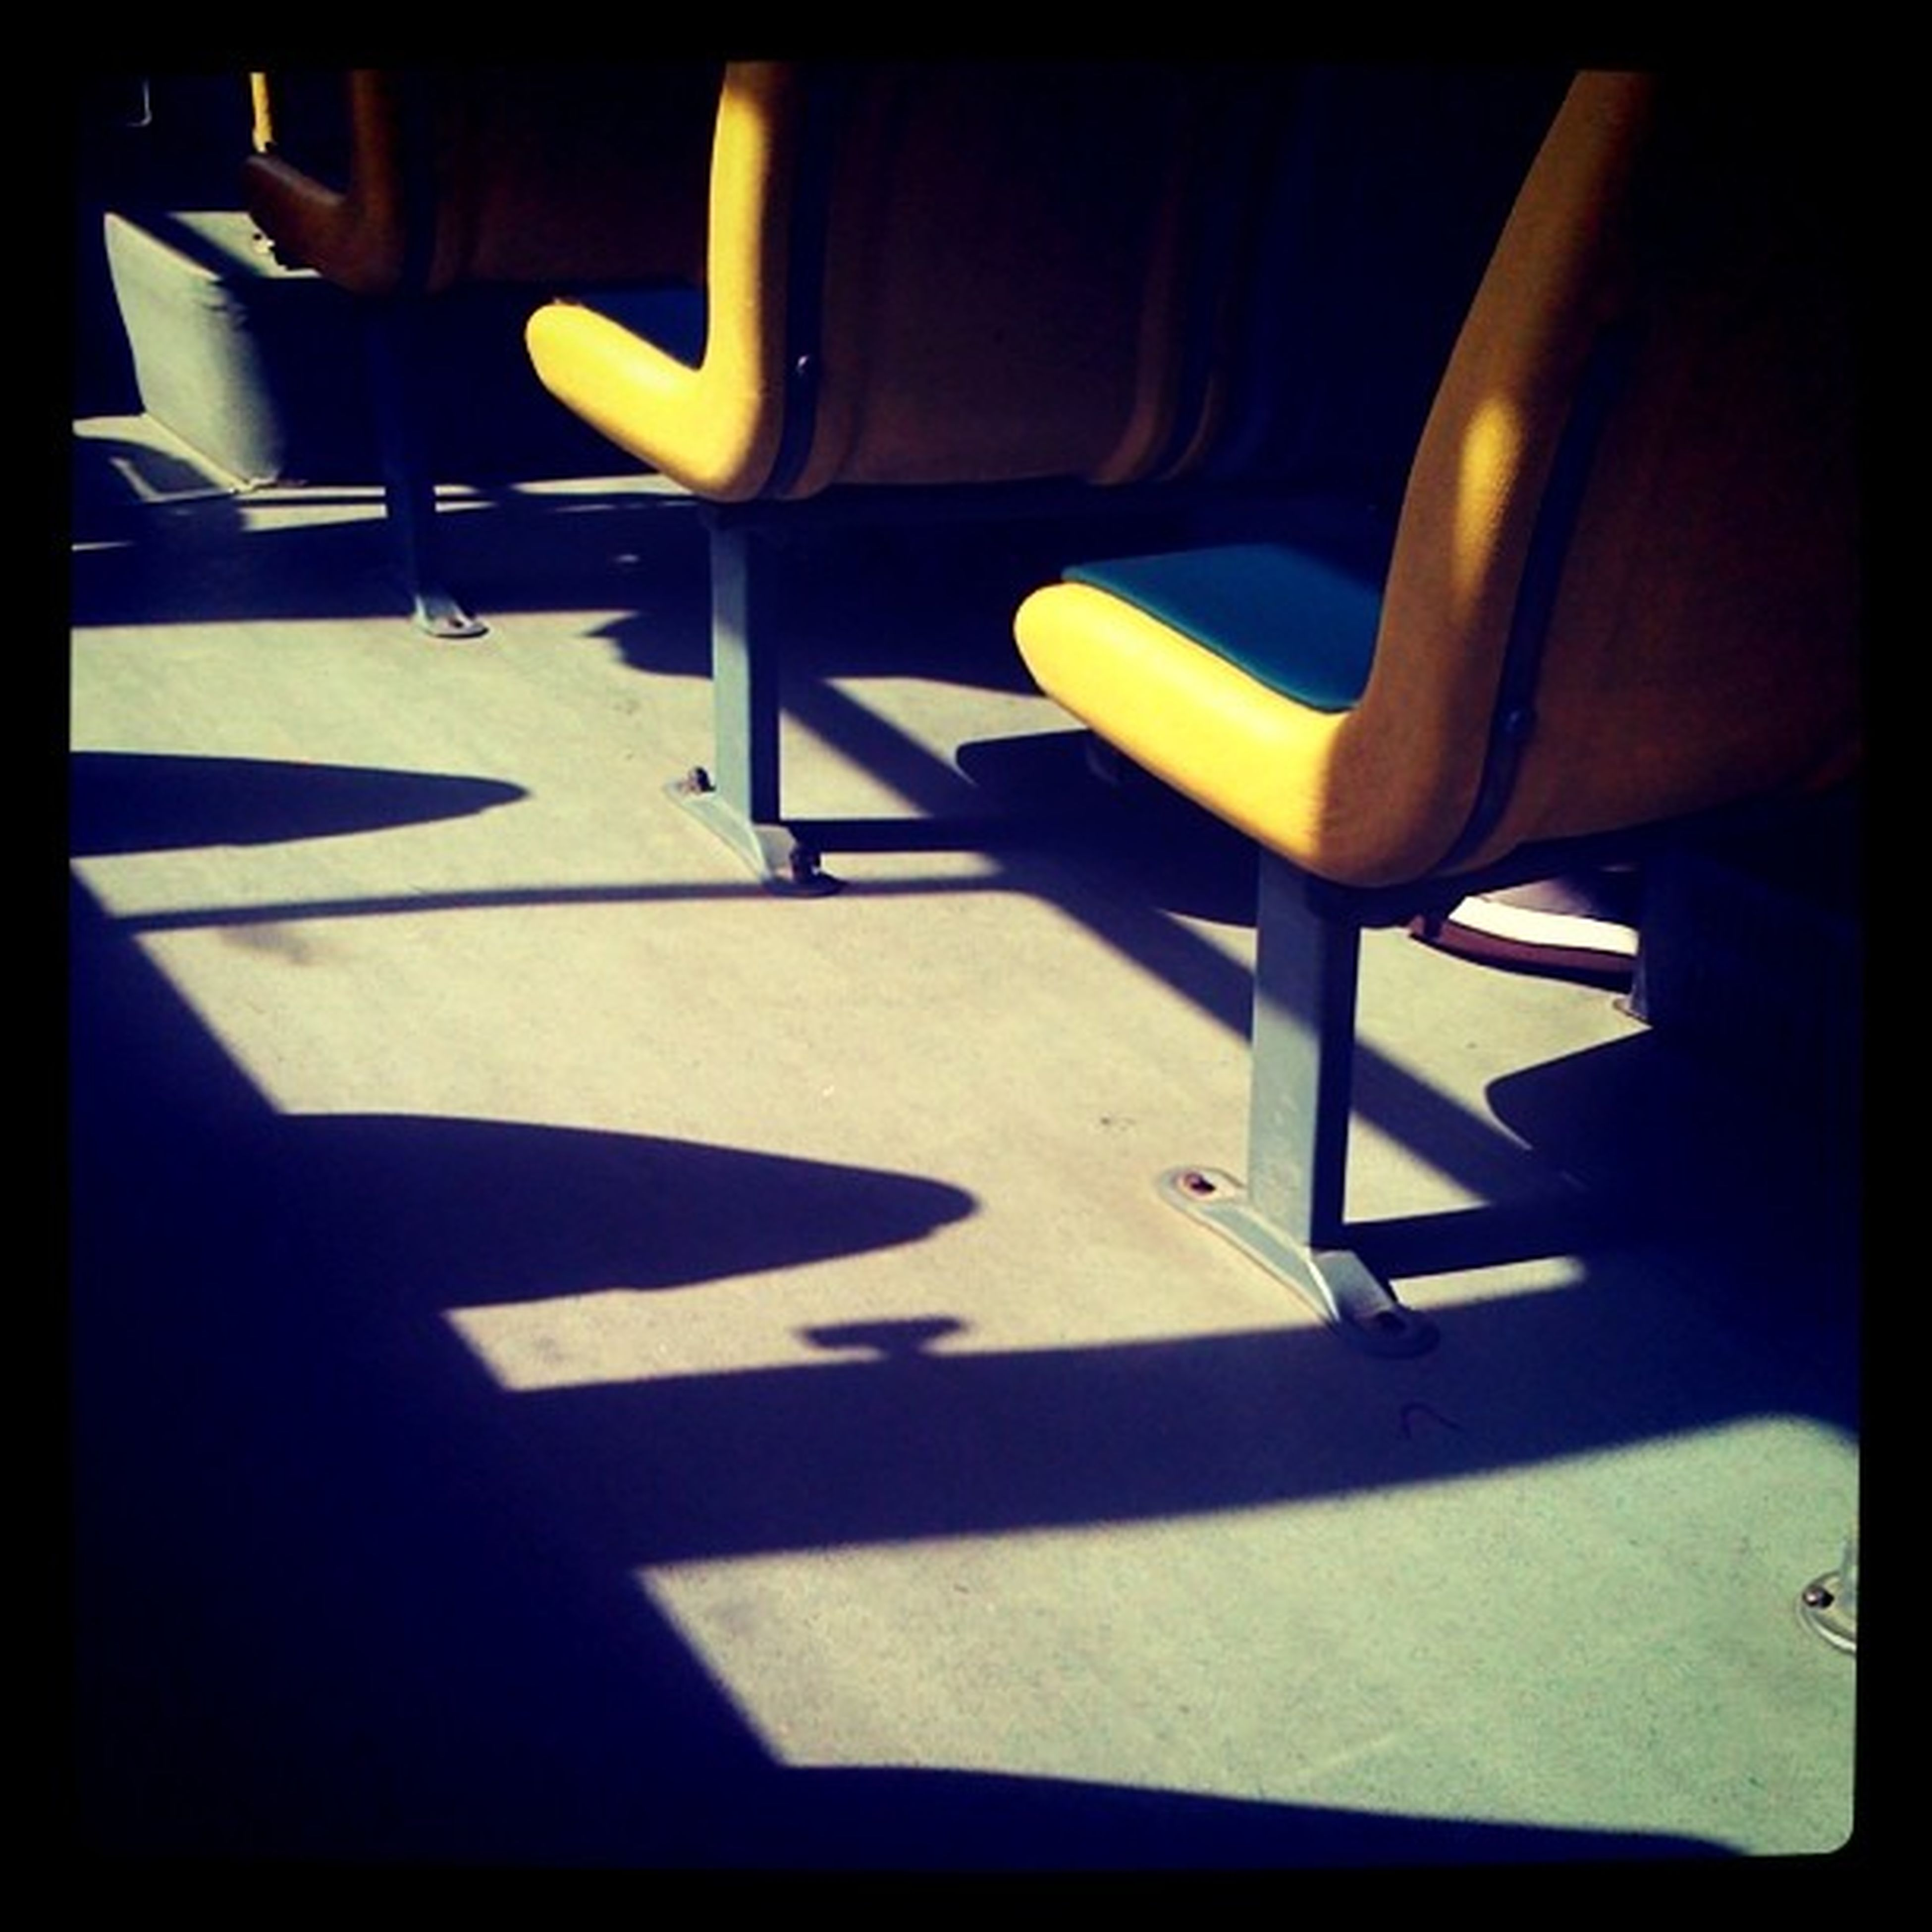 transfer print, auto post production filter, empty, chair, sunlight, absence, shadow, indoors, high angle view, seat, transportation, day, no people, table, street, bench, car, mode of transport, elevated view